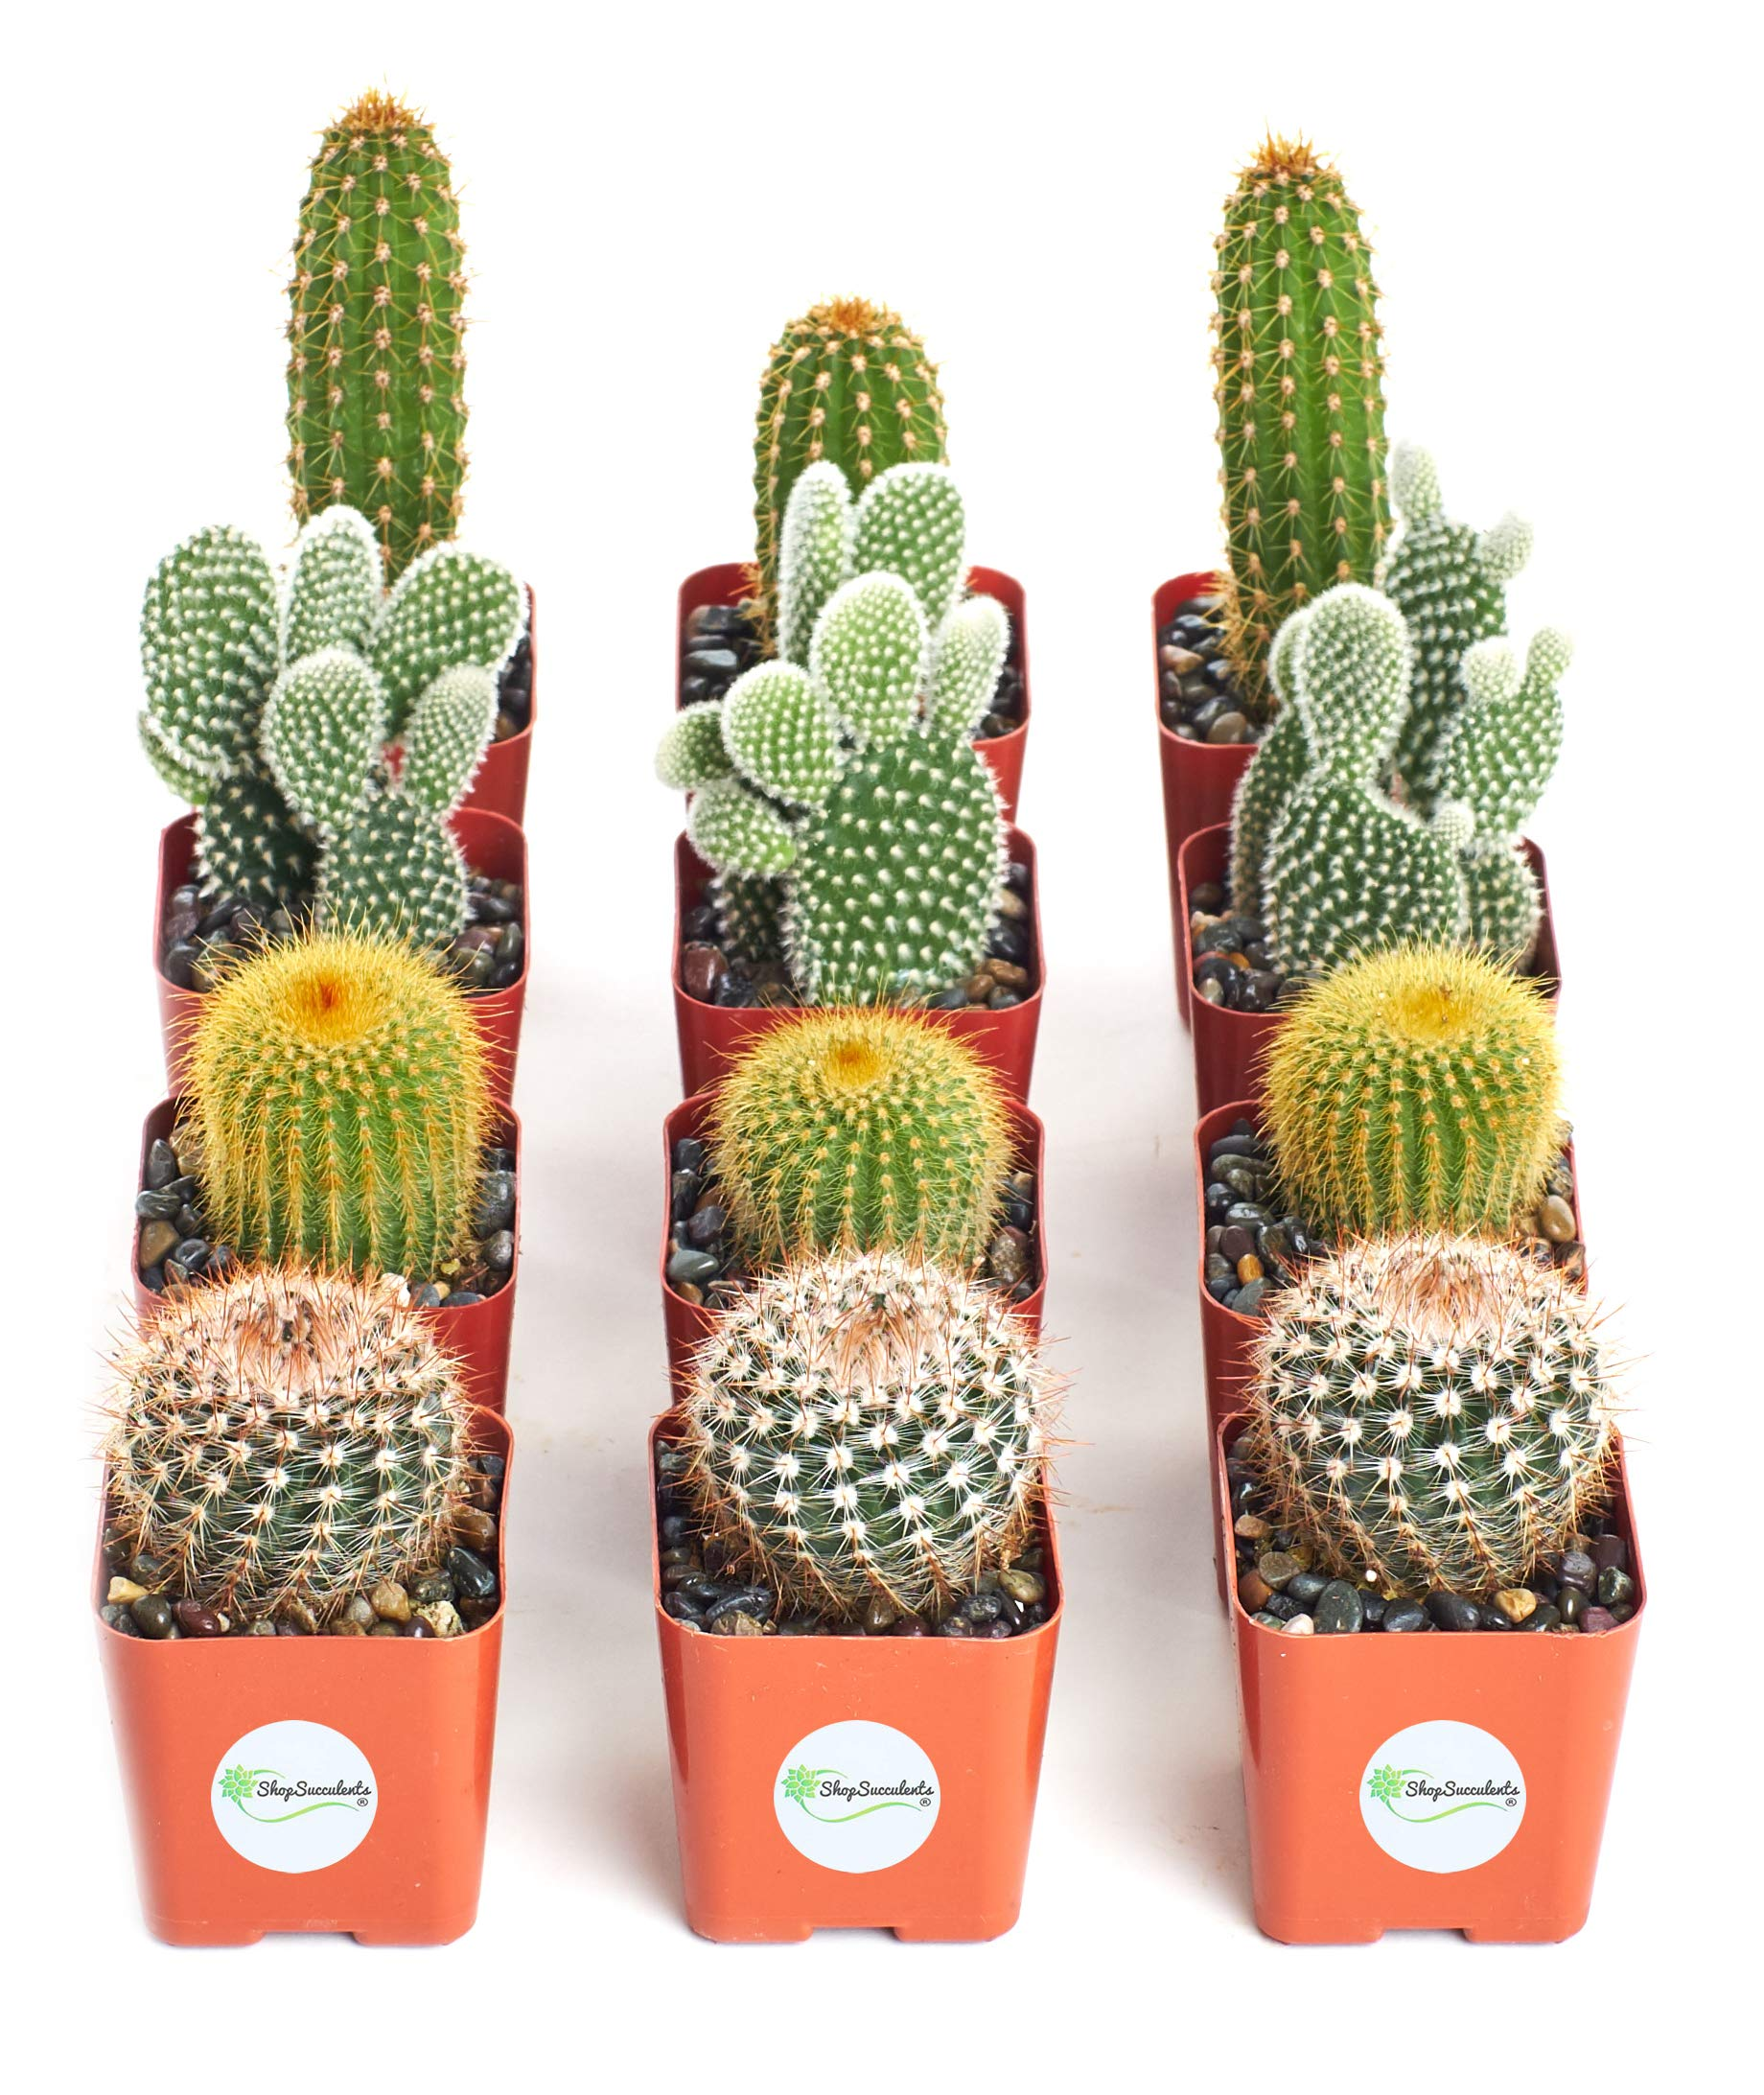 Shop Succulents | Cool Cactus Collection of Live Succulent Plants, Hand Selected Variety Pack of Cacti | Collection of 12 in 2'' pots